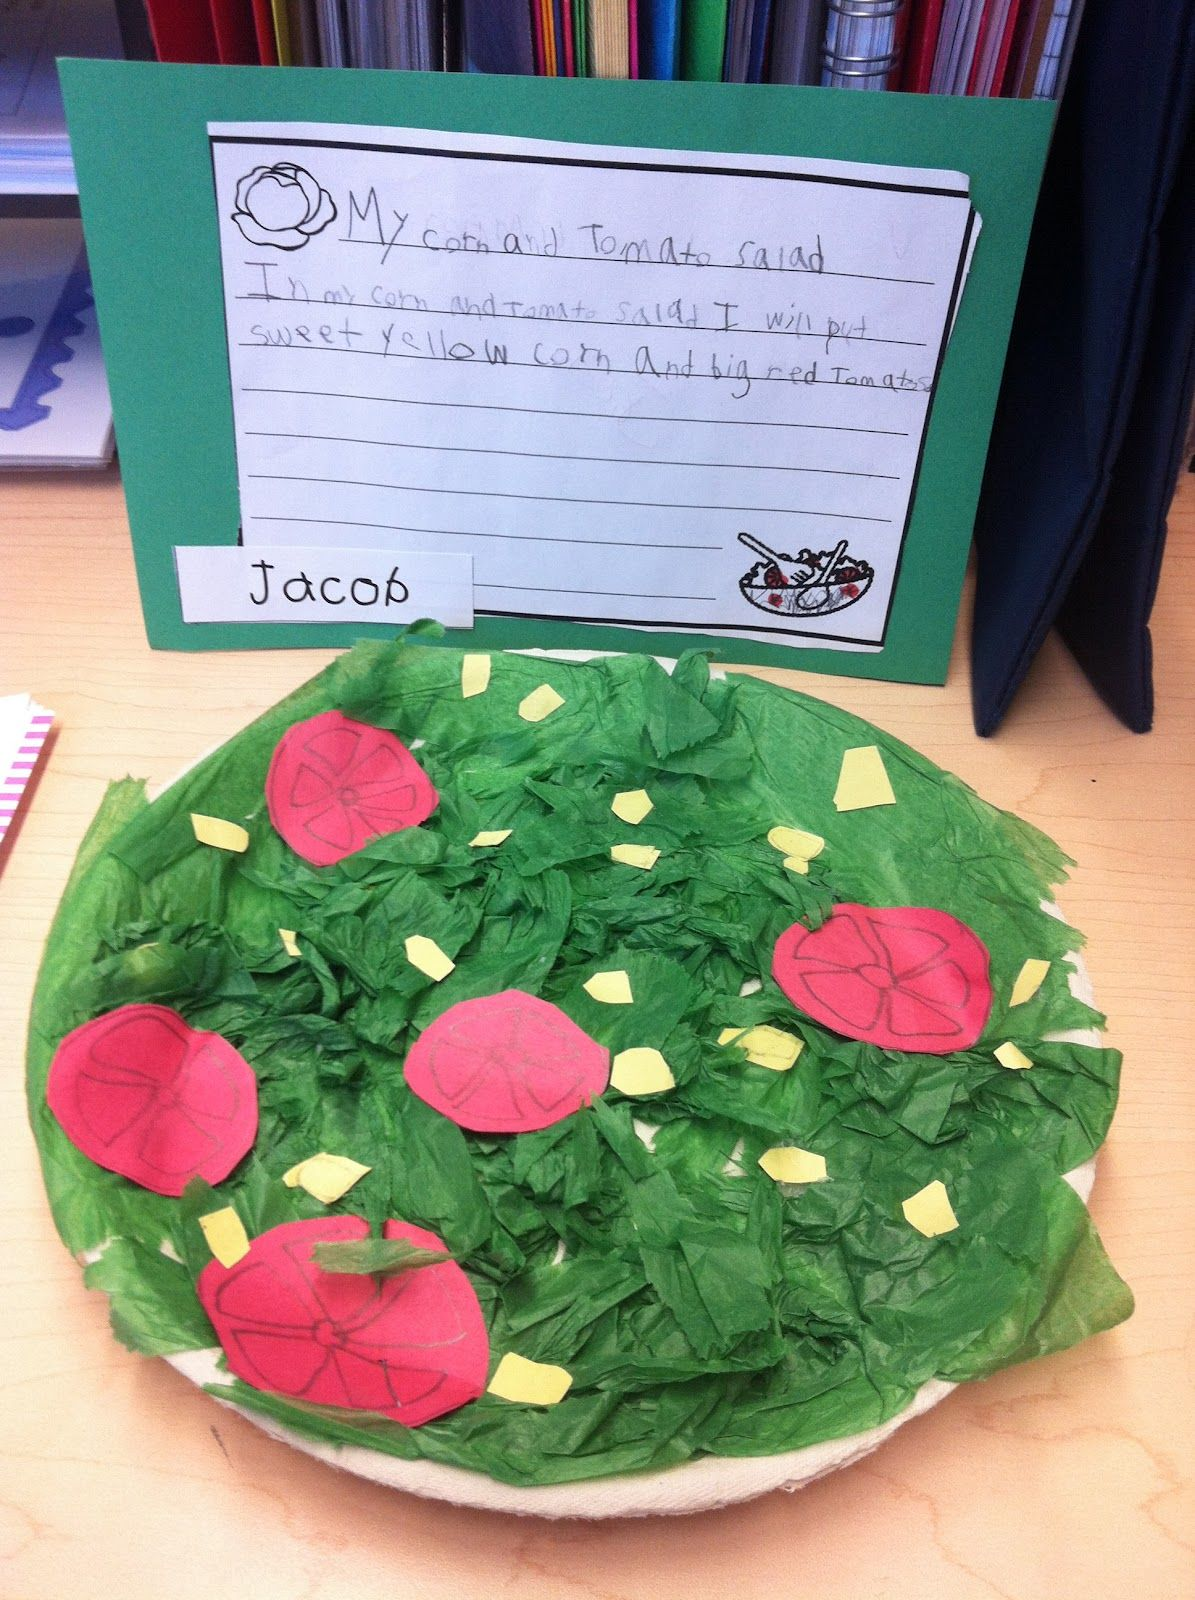 Today In Second Grade Nutrition Unit